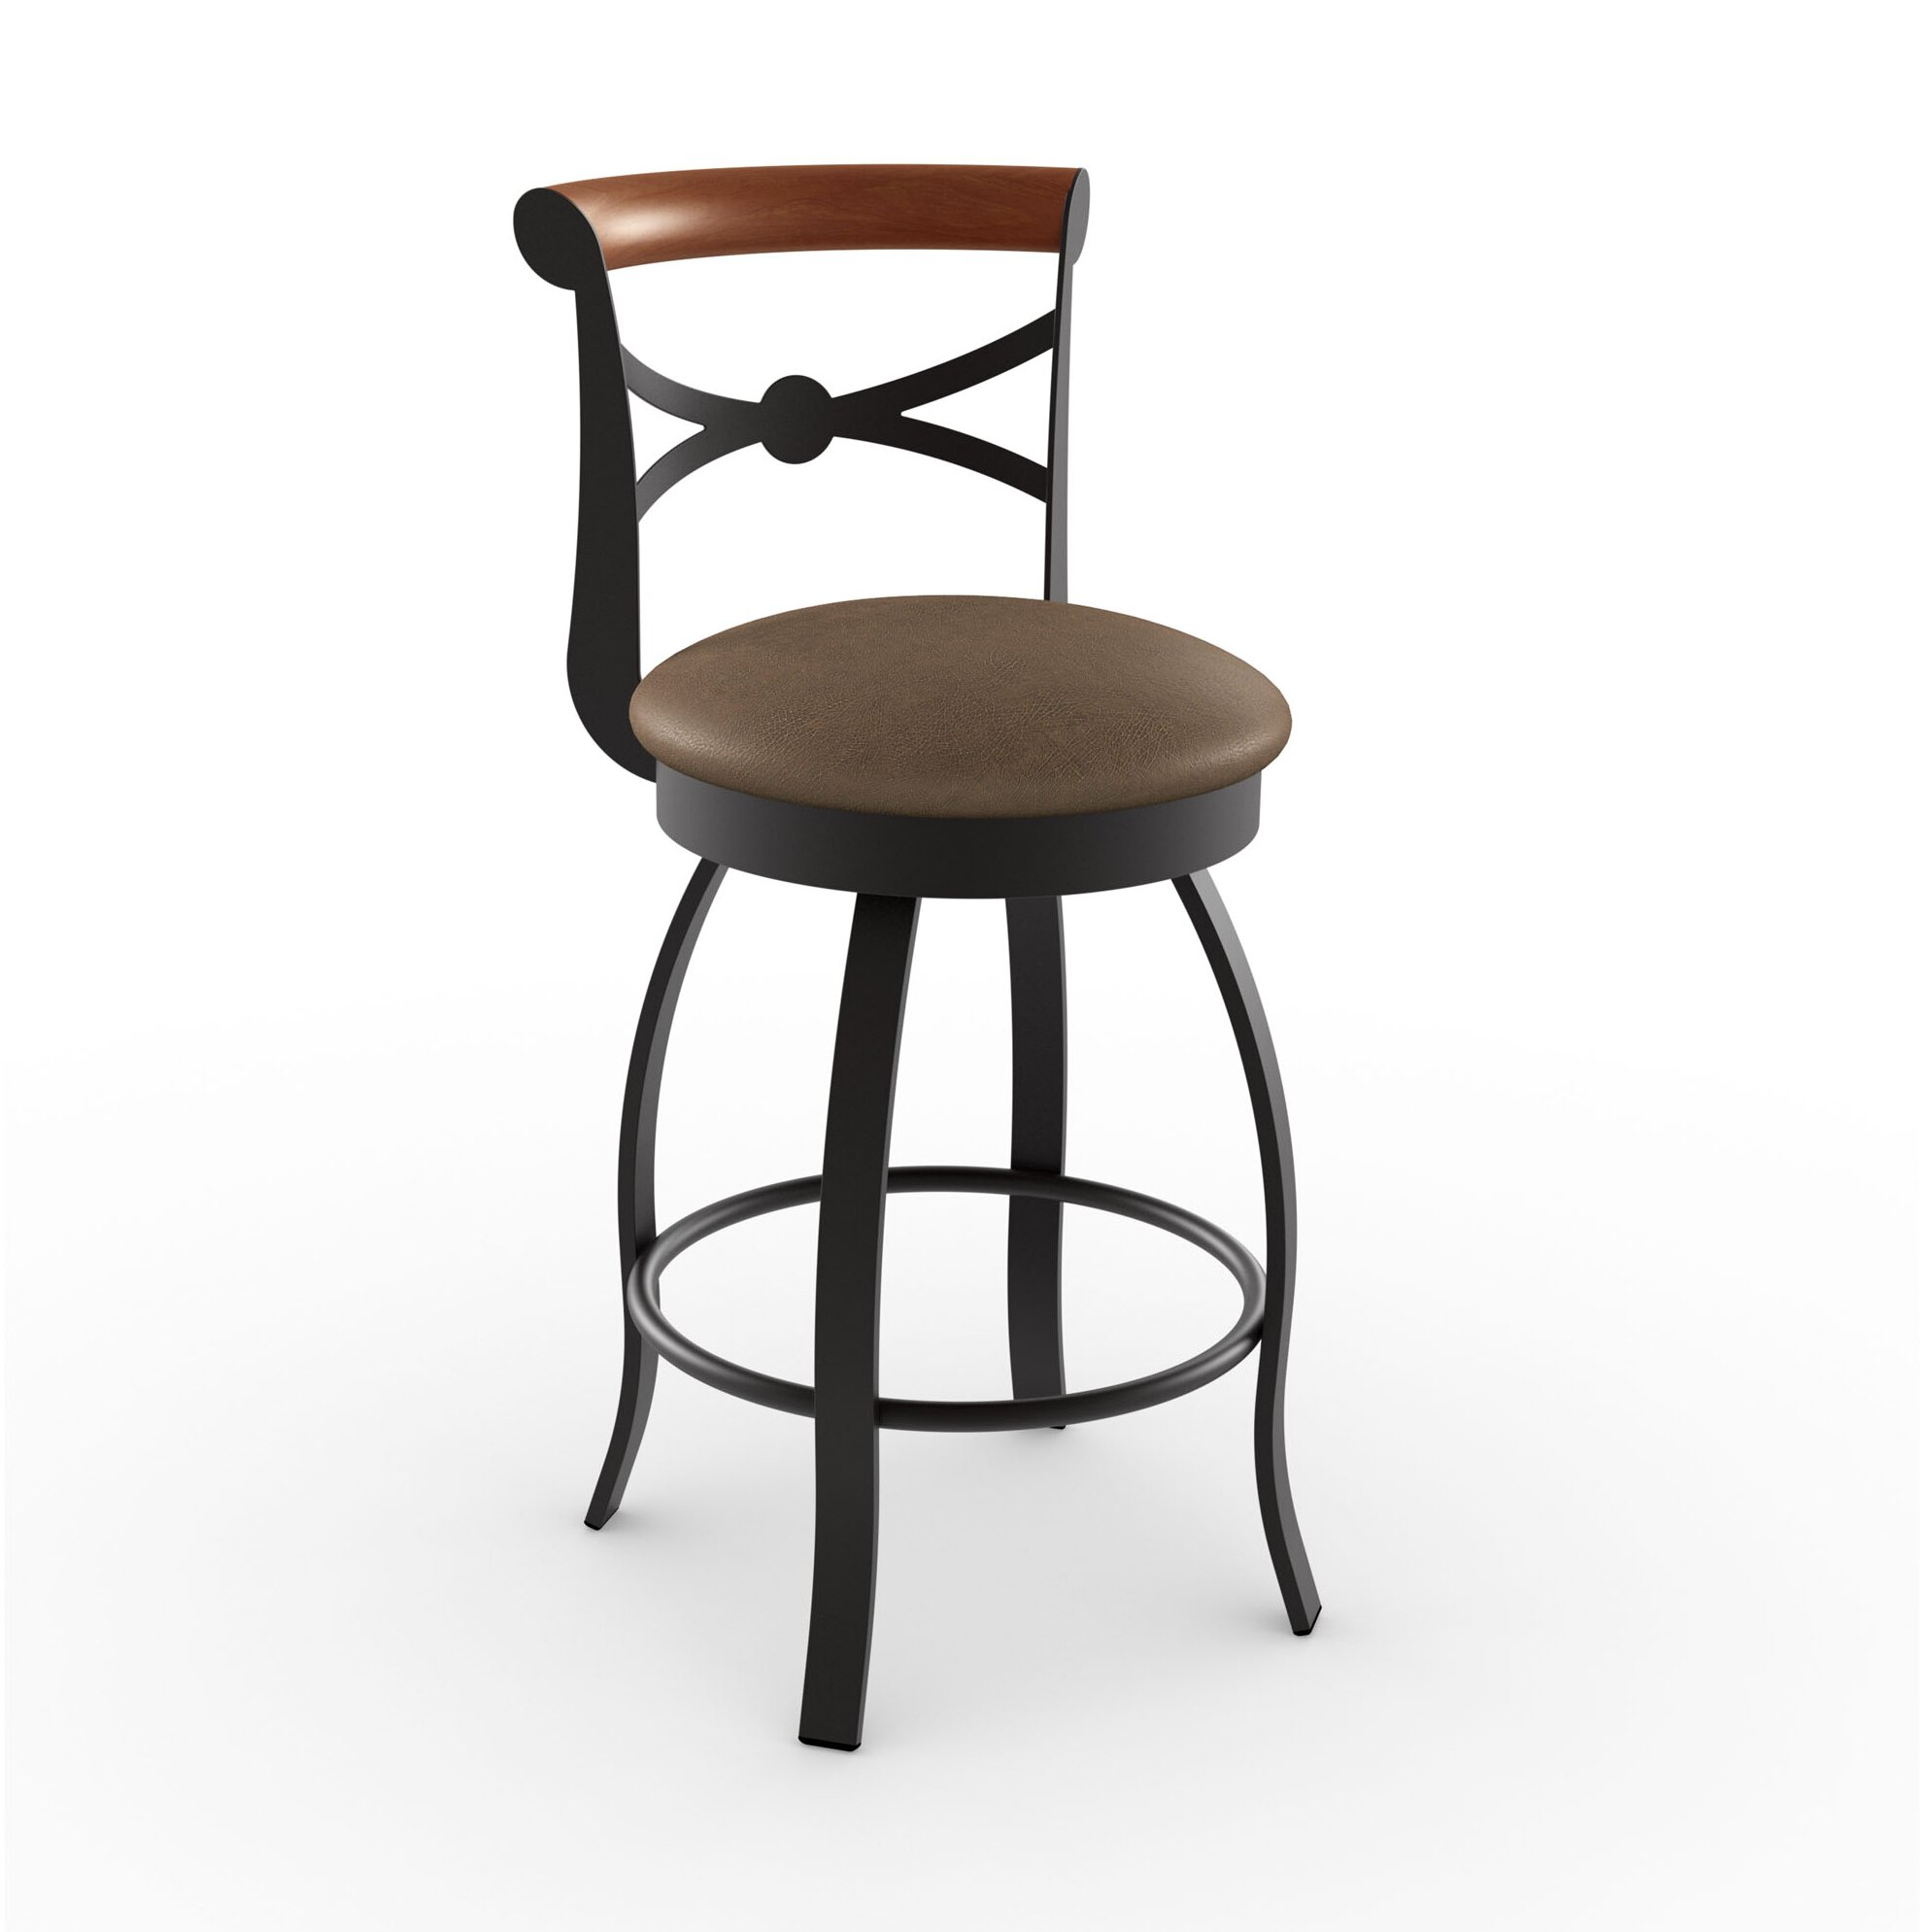 Amisco Library Luxe Style 2575quot Swivel Bar Stool  : LibraryLuxeStyle257522SwivelBarStool from www.wayfair.com size 1989 x 1989 jpeg 124kB